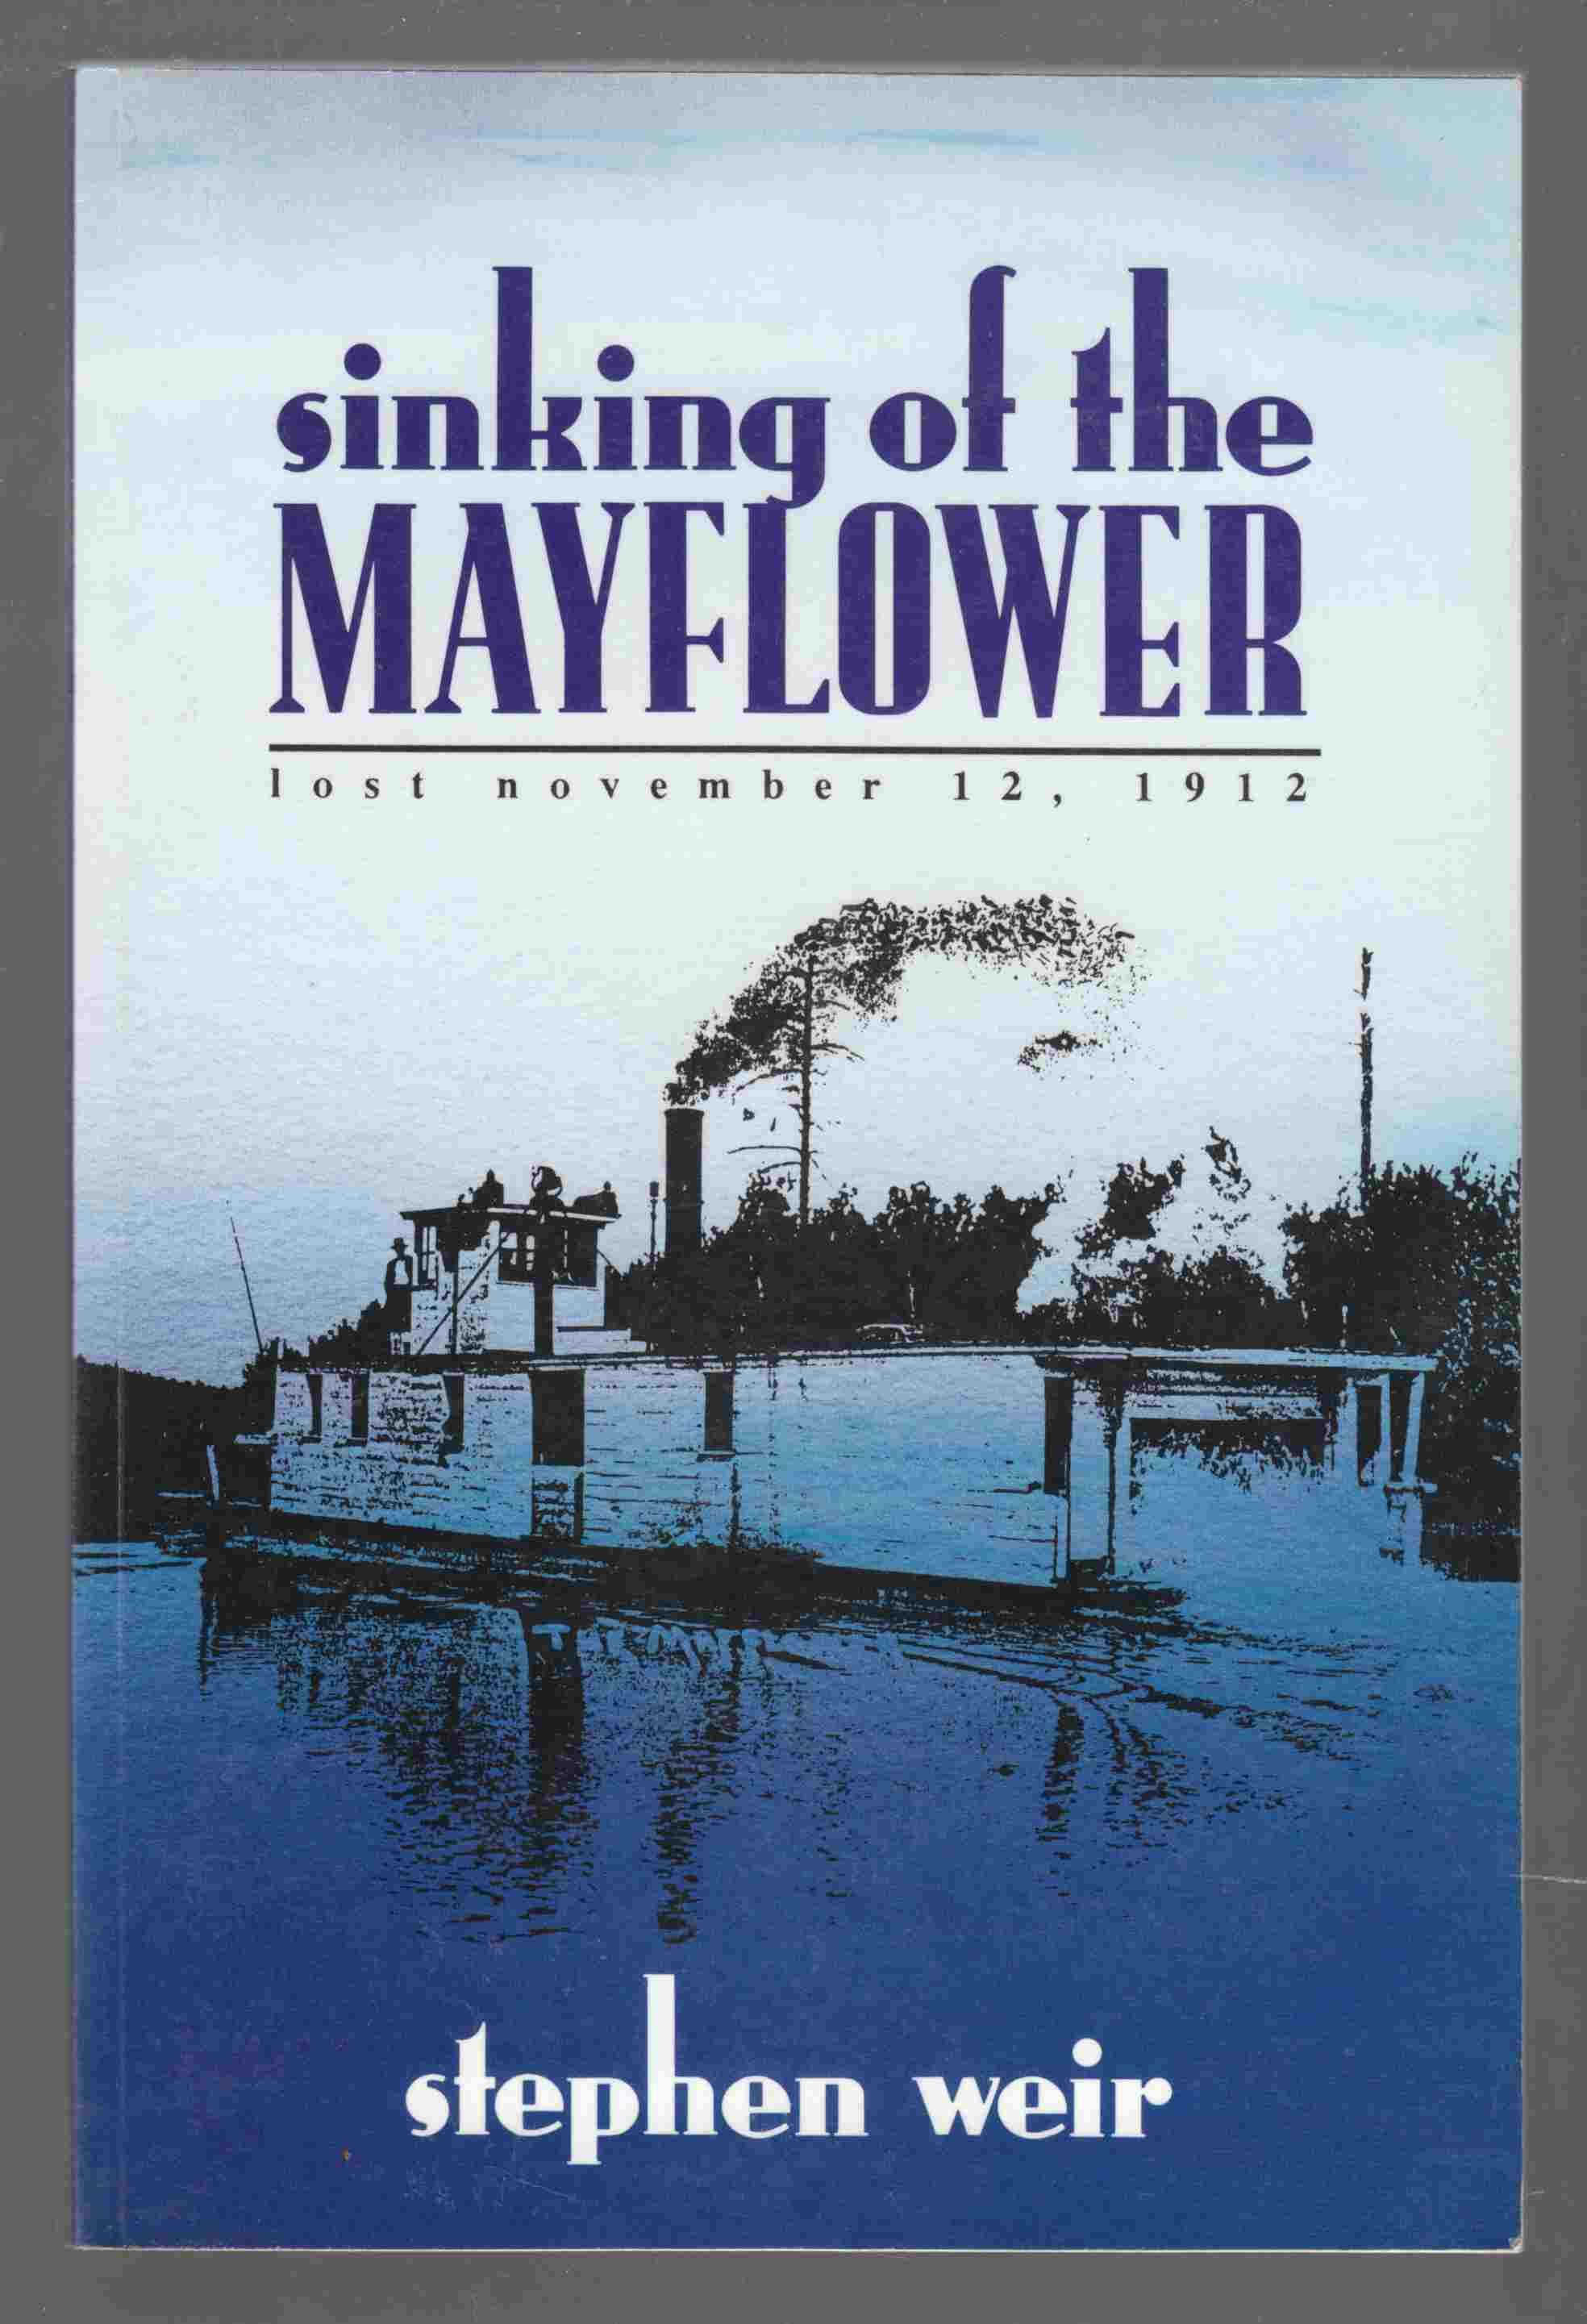 Image for Sinking of the Mayflower Lost November 12, 1912